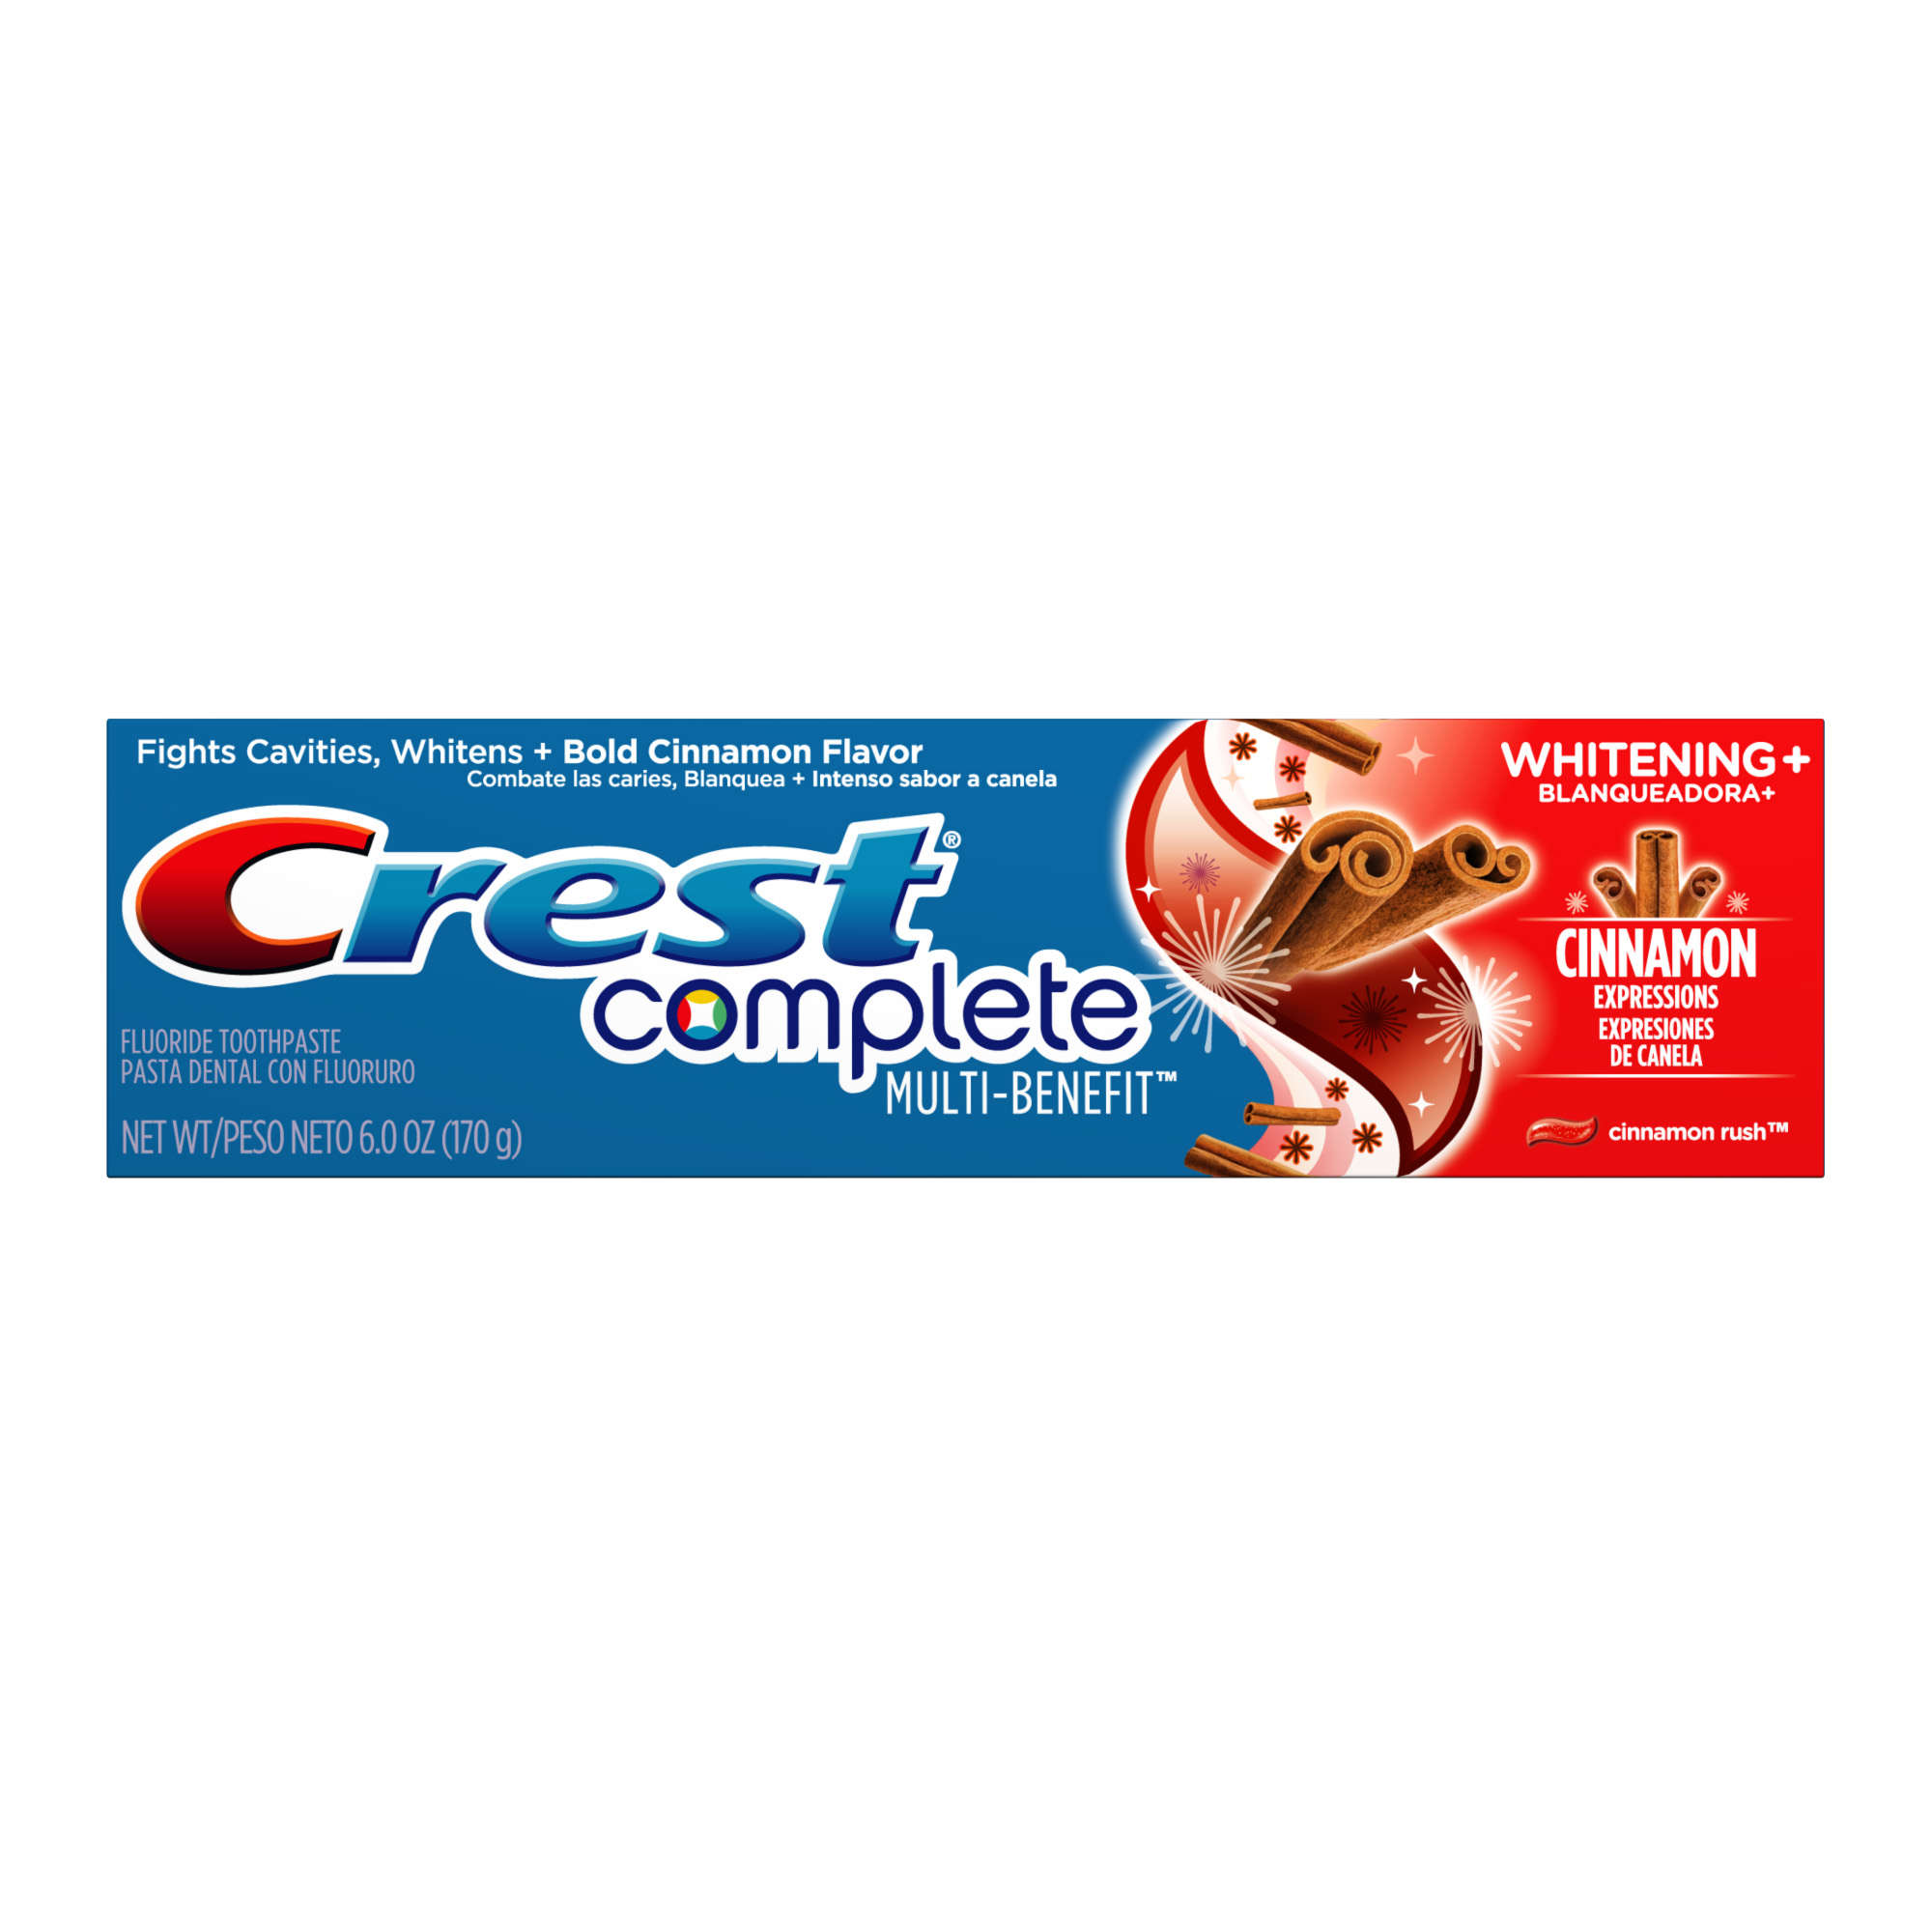 Crest Complete Whitening Expressions Cinnamon Rush Flavor Toothpaste (Choose Size)